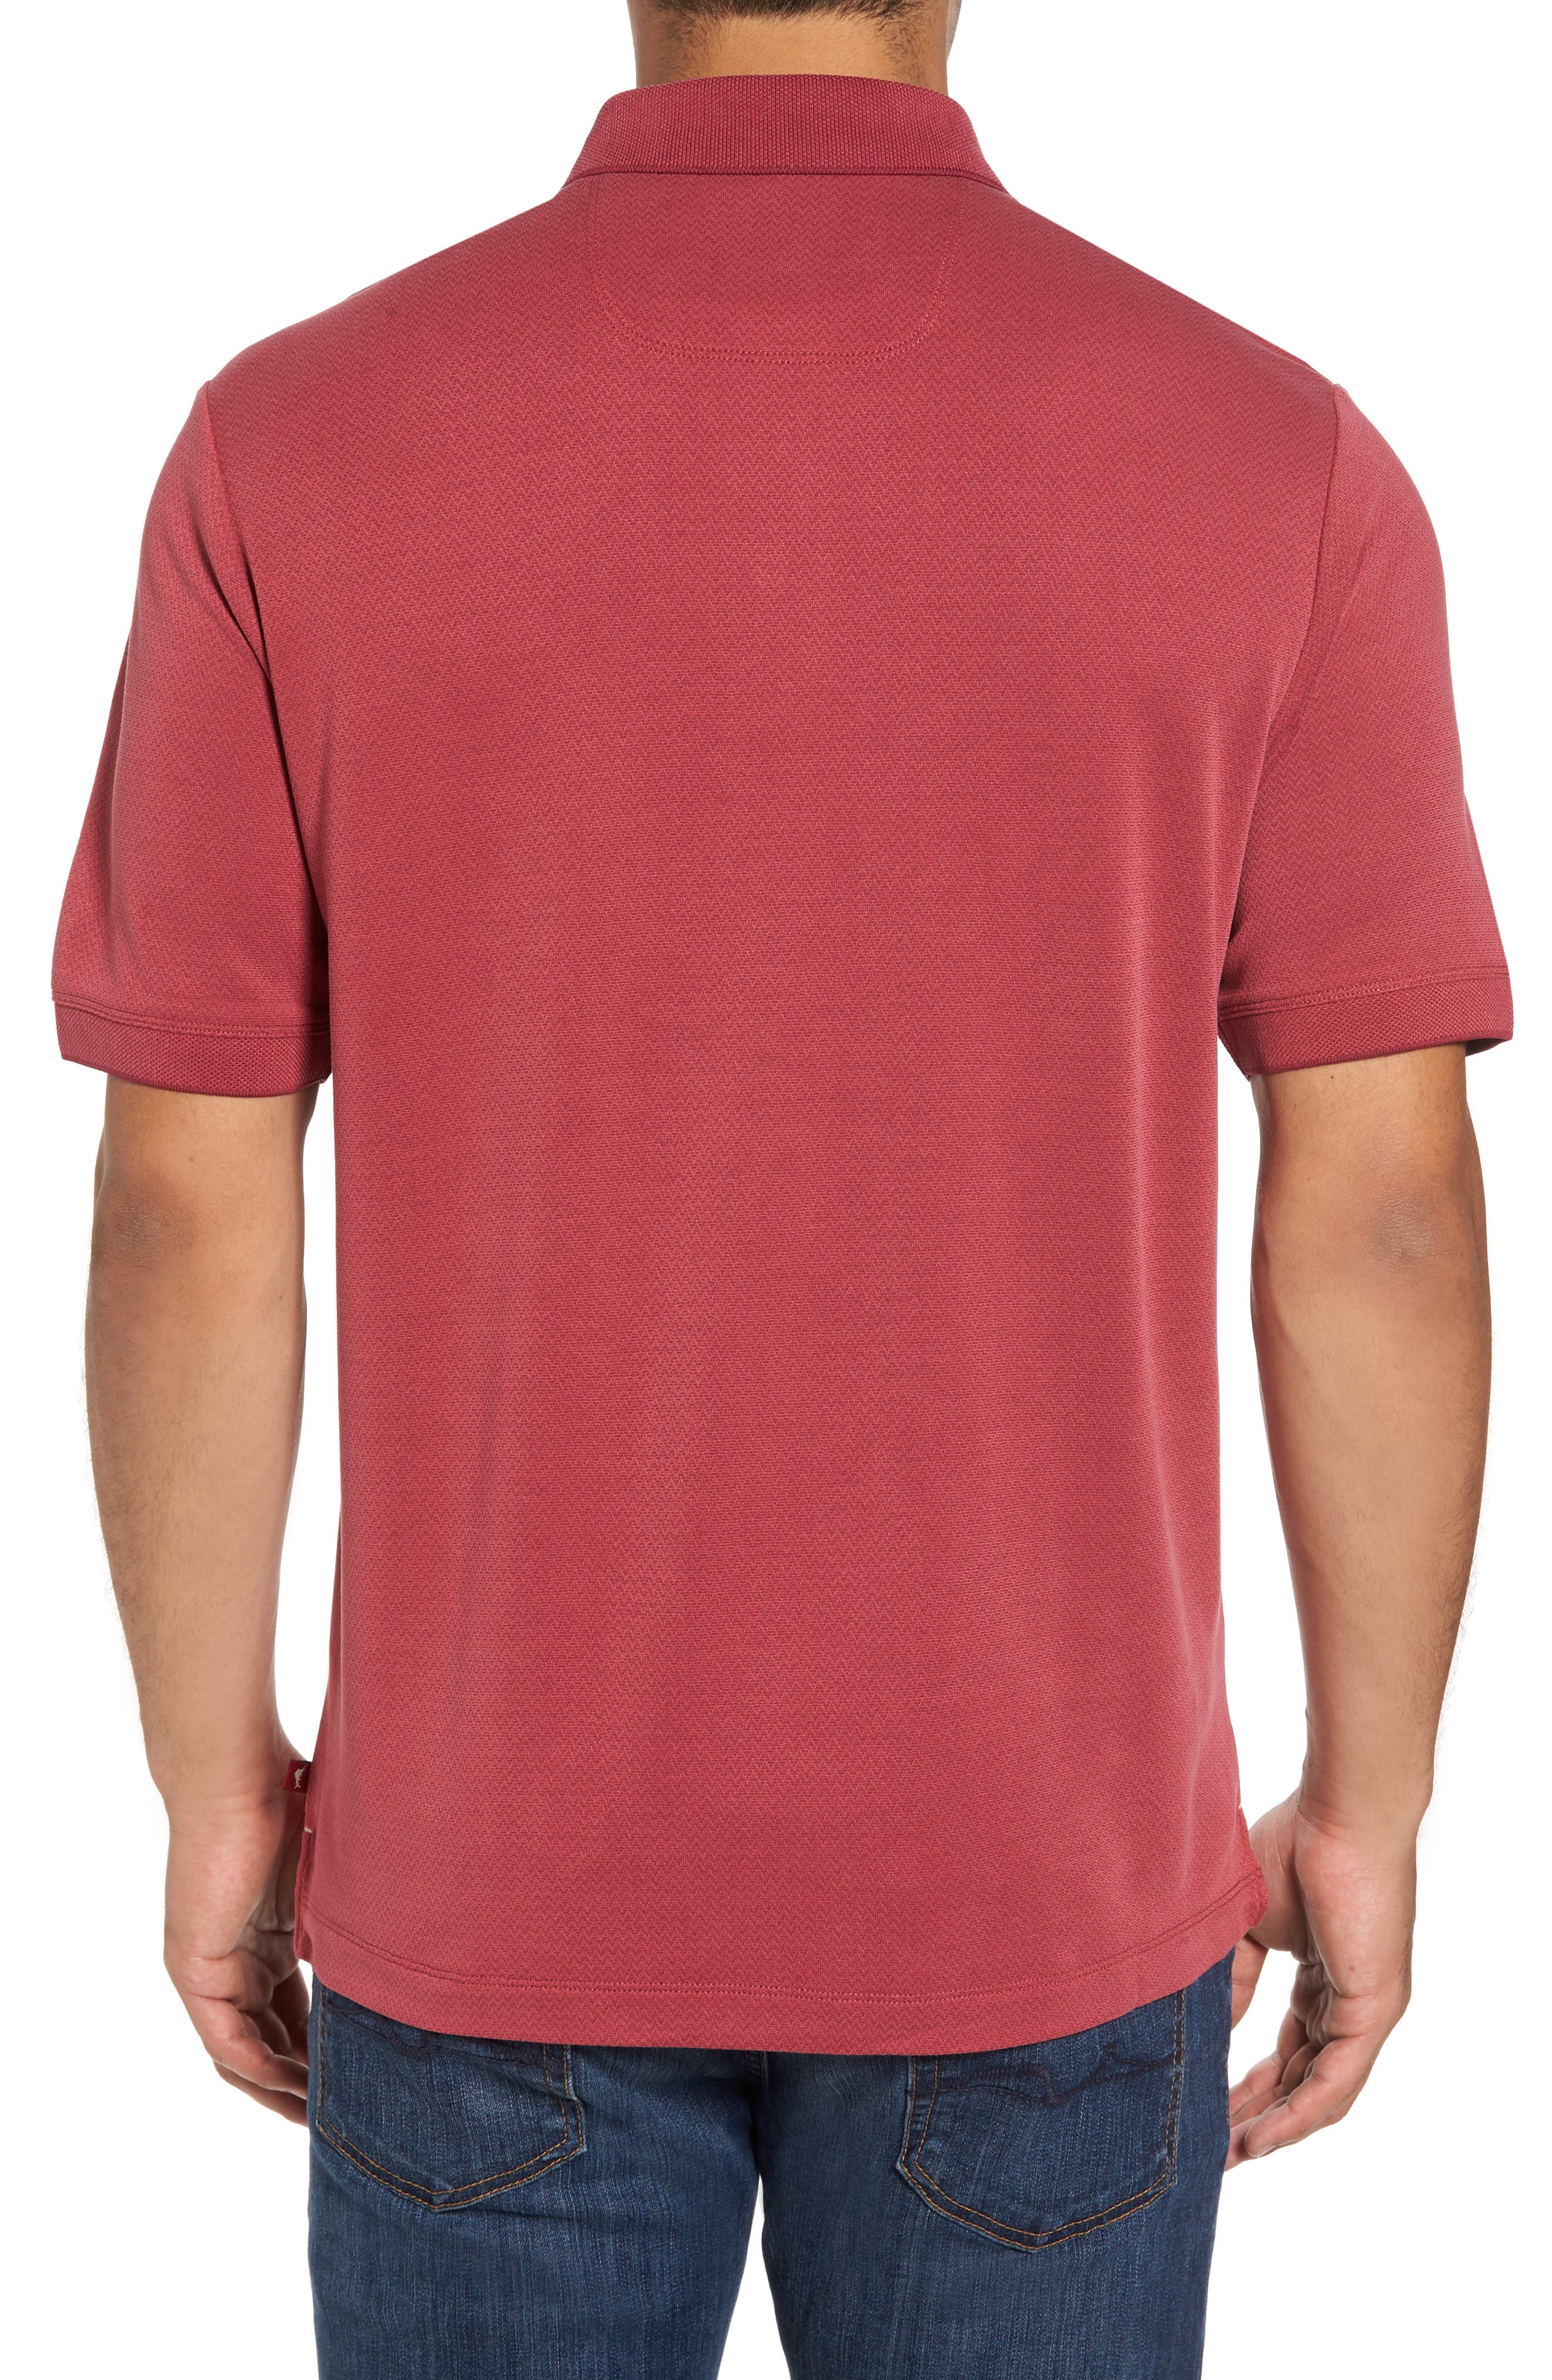 Ocean View Short Sleeve Jacquard Polo,                             Alternate thumbnail 2, color,                             Beet Red